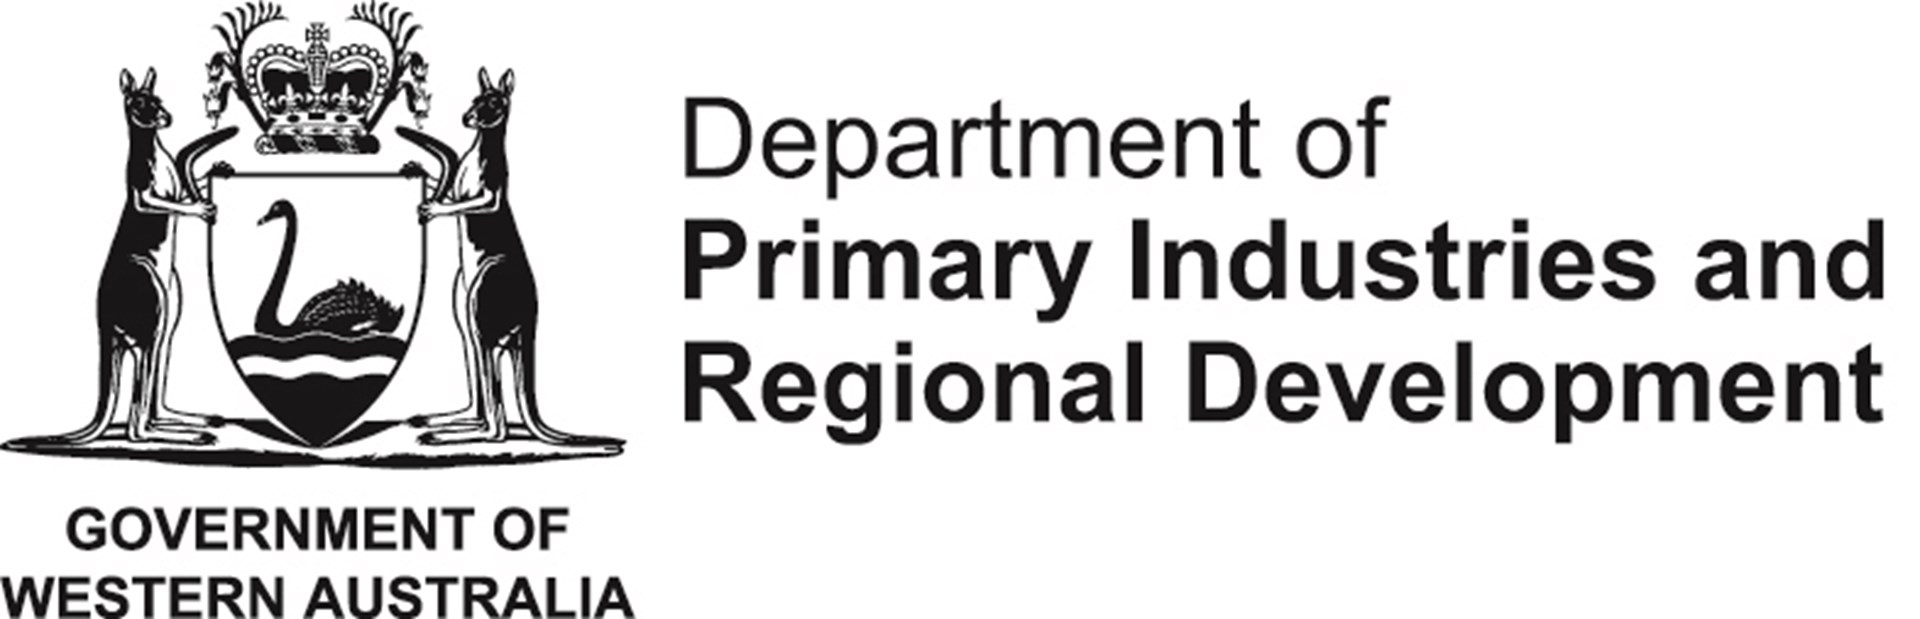 Picture: Department of Primary Industries and Regional Development